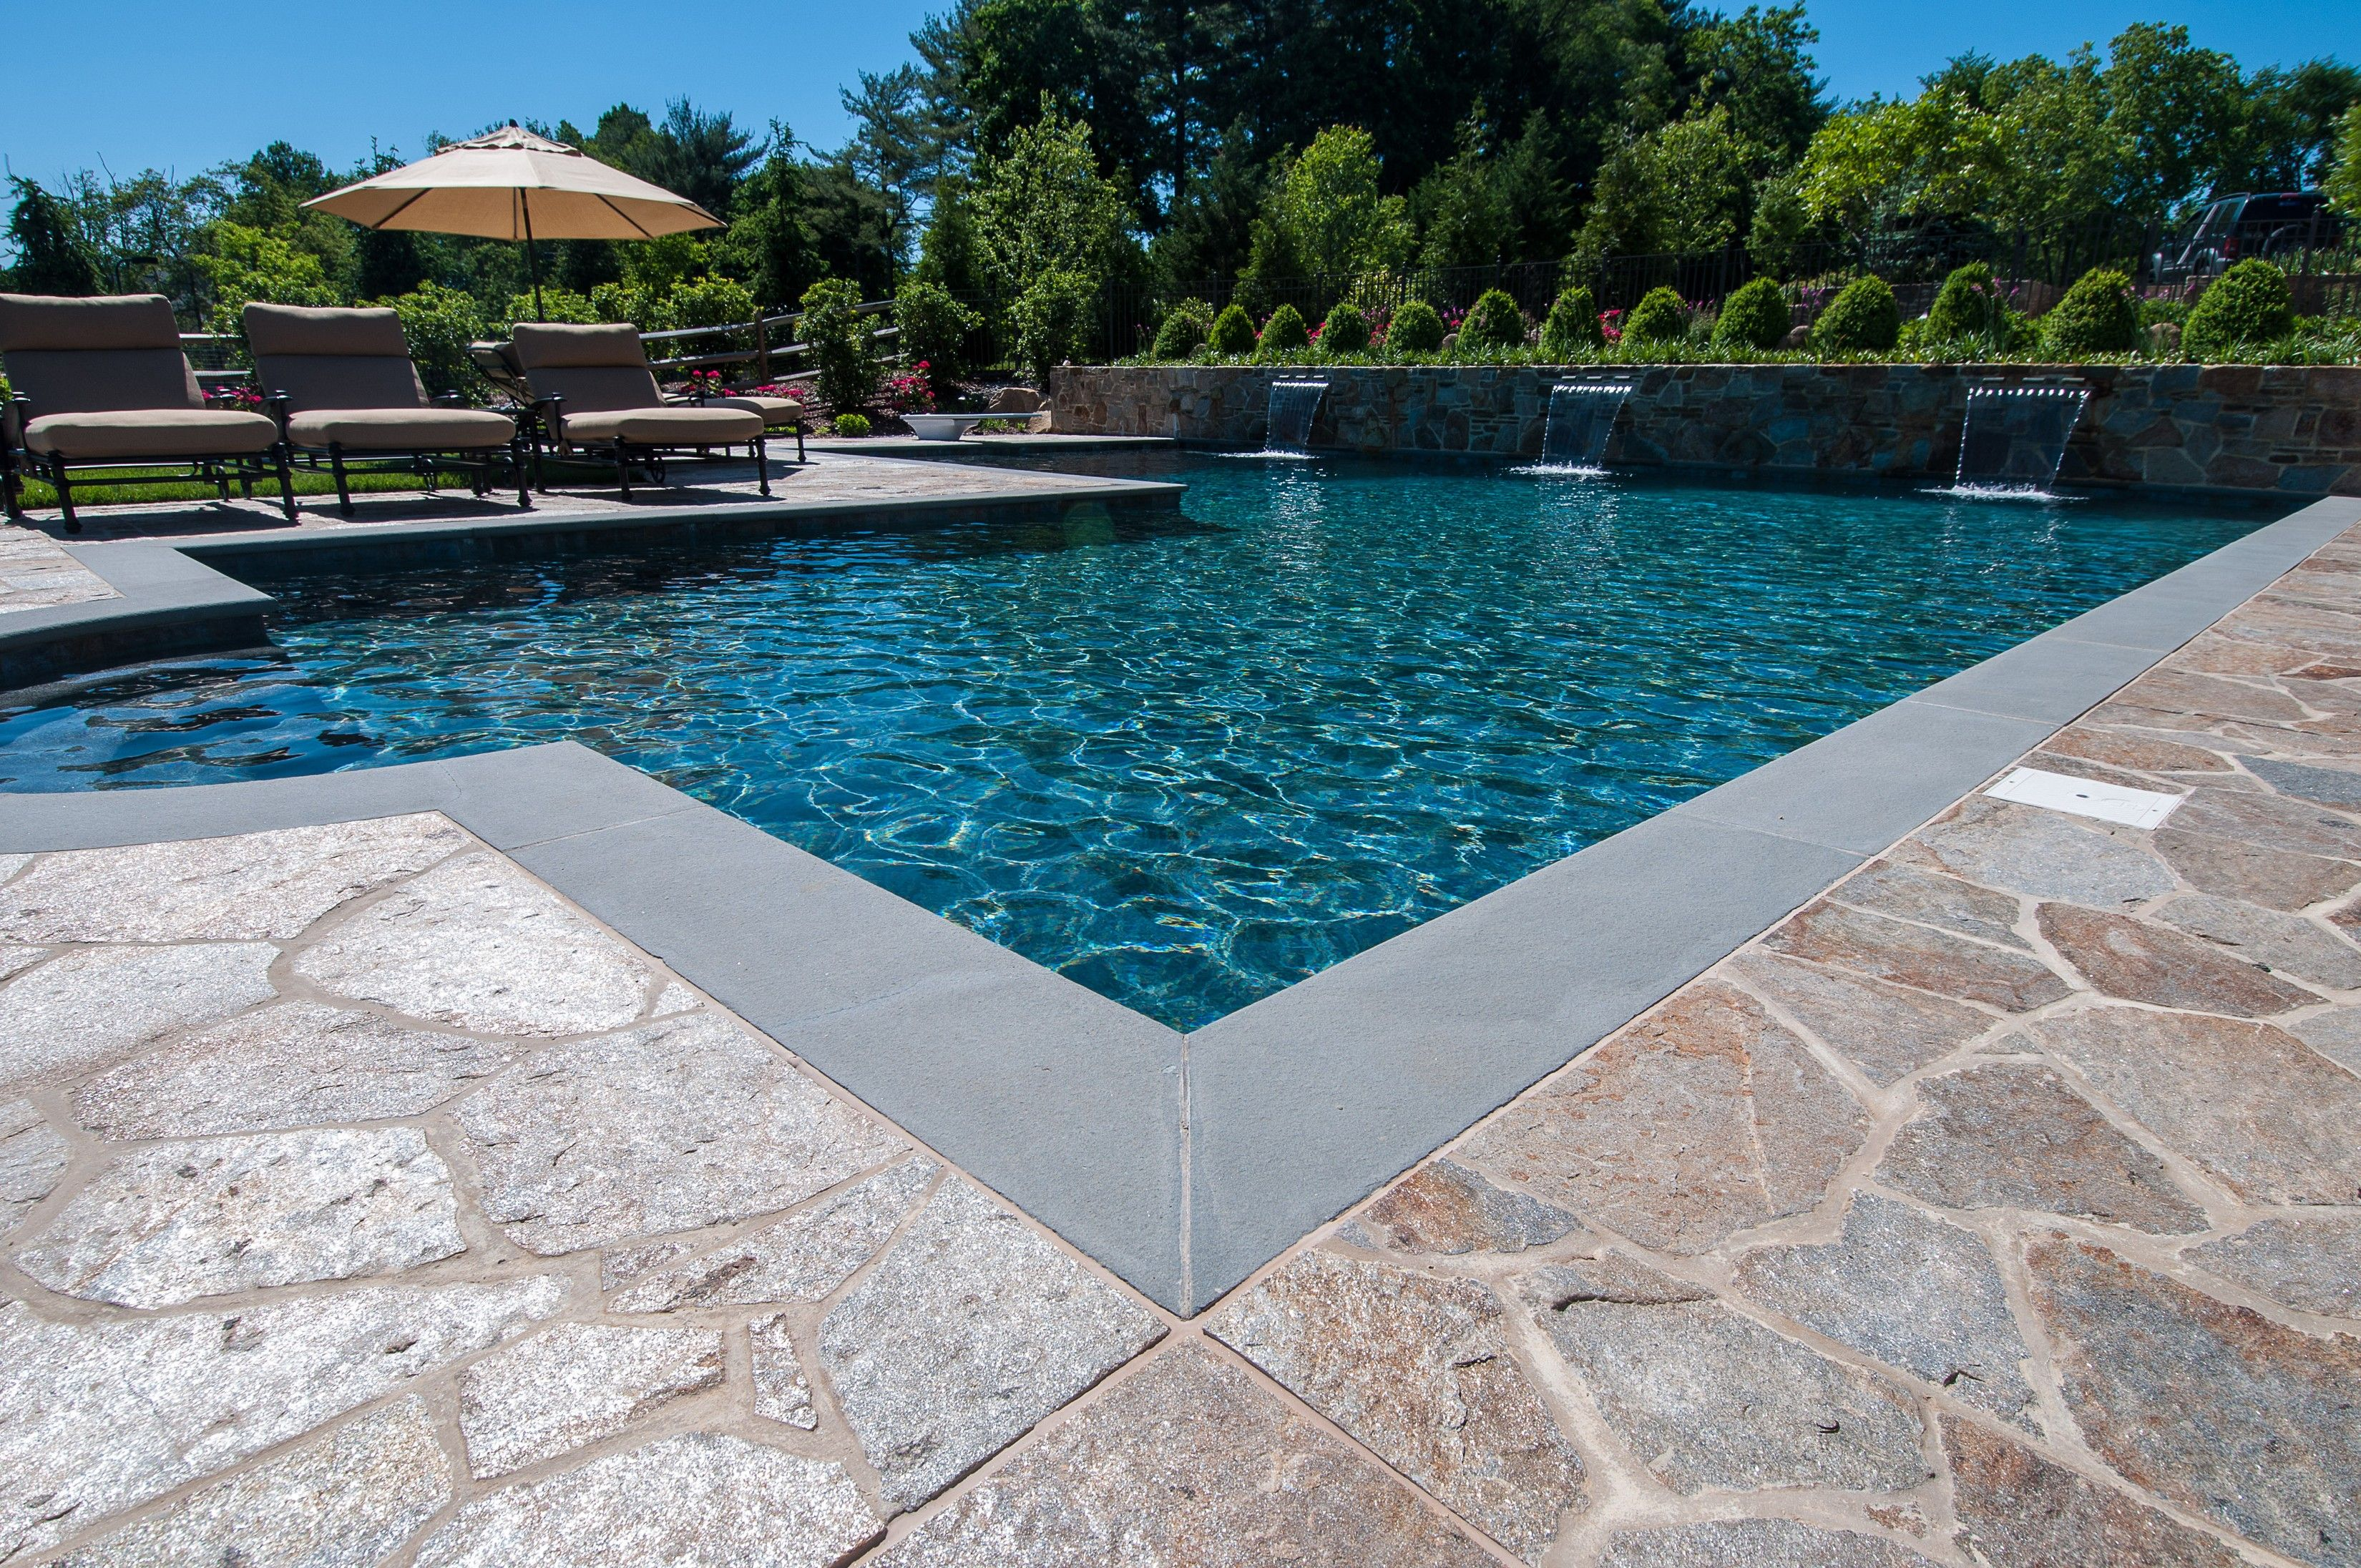 Pebble Sheen Ocean Blue Pool Finish Poolscapes Pinterest Blue Pool Backyard And Pool Remodel